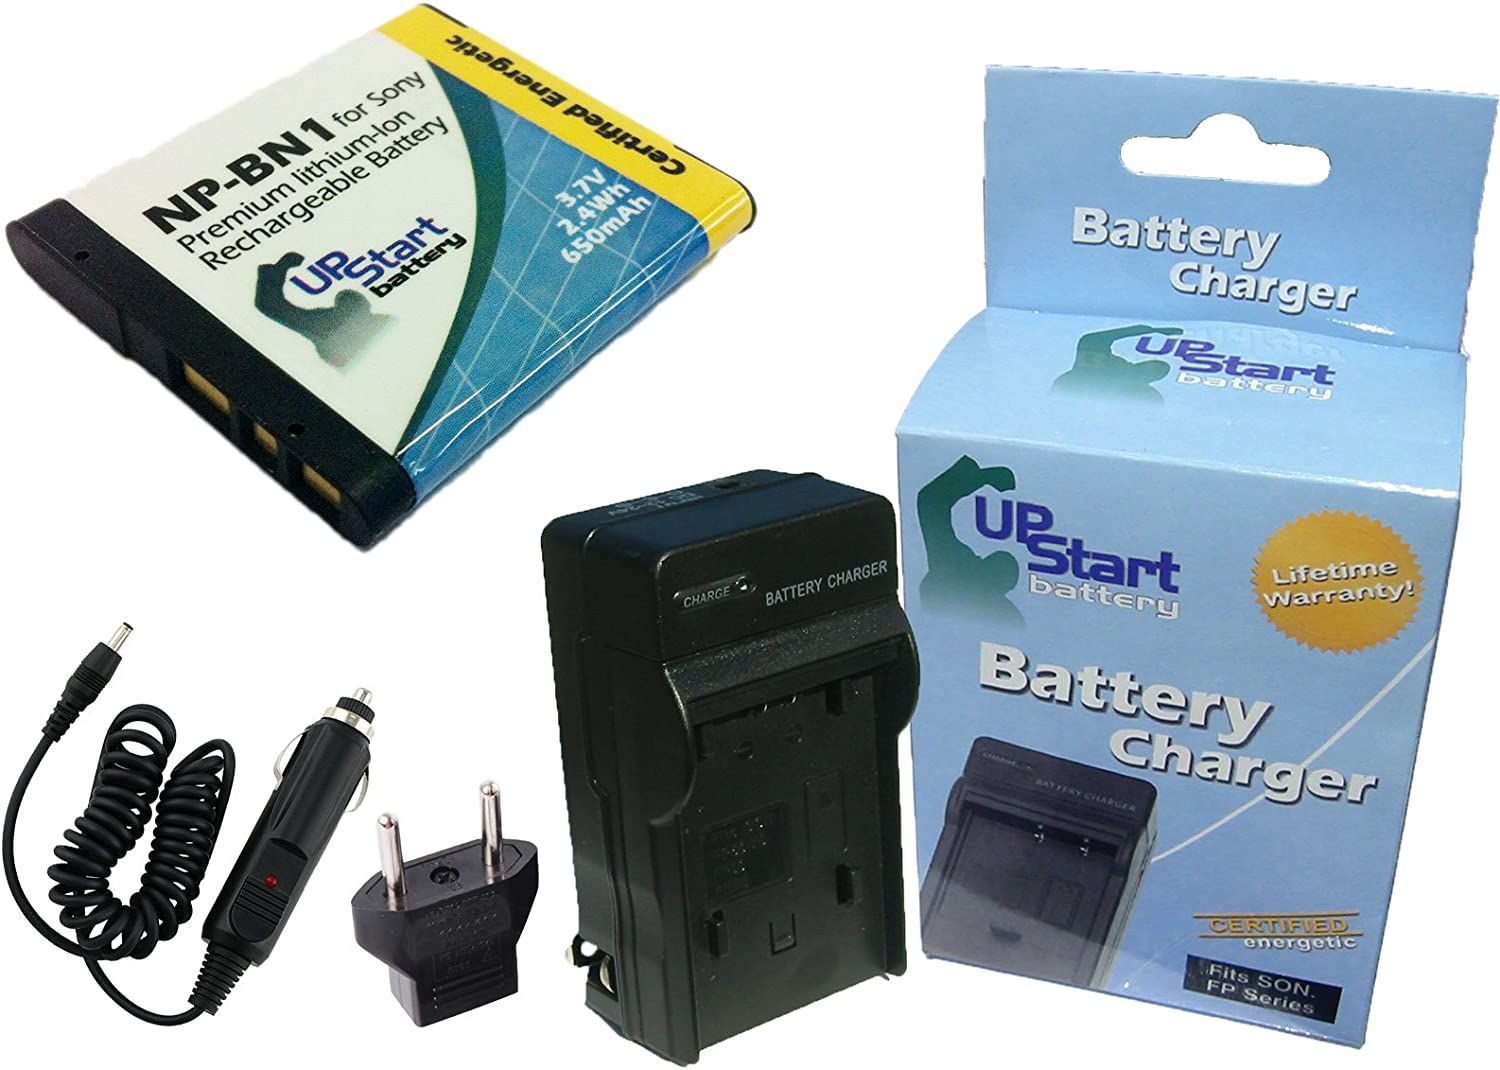 Compatible with Sony NP-BN1 Digital Camera Batteries and Chargers 650mAh 3.7V Lithium-Ion Replacement for Sony Cybershot DSC-W610 Battery and Charger with Car Plug and EU Adapter